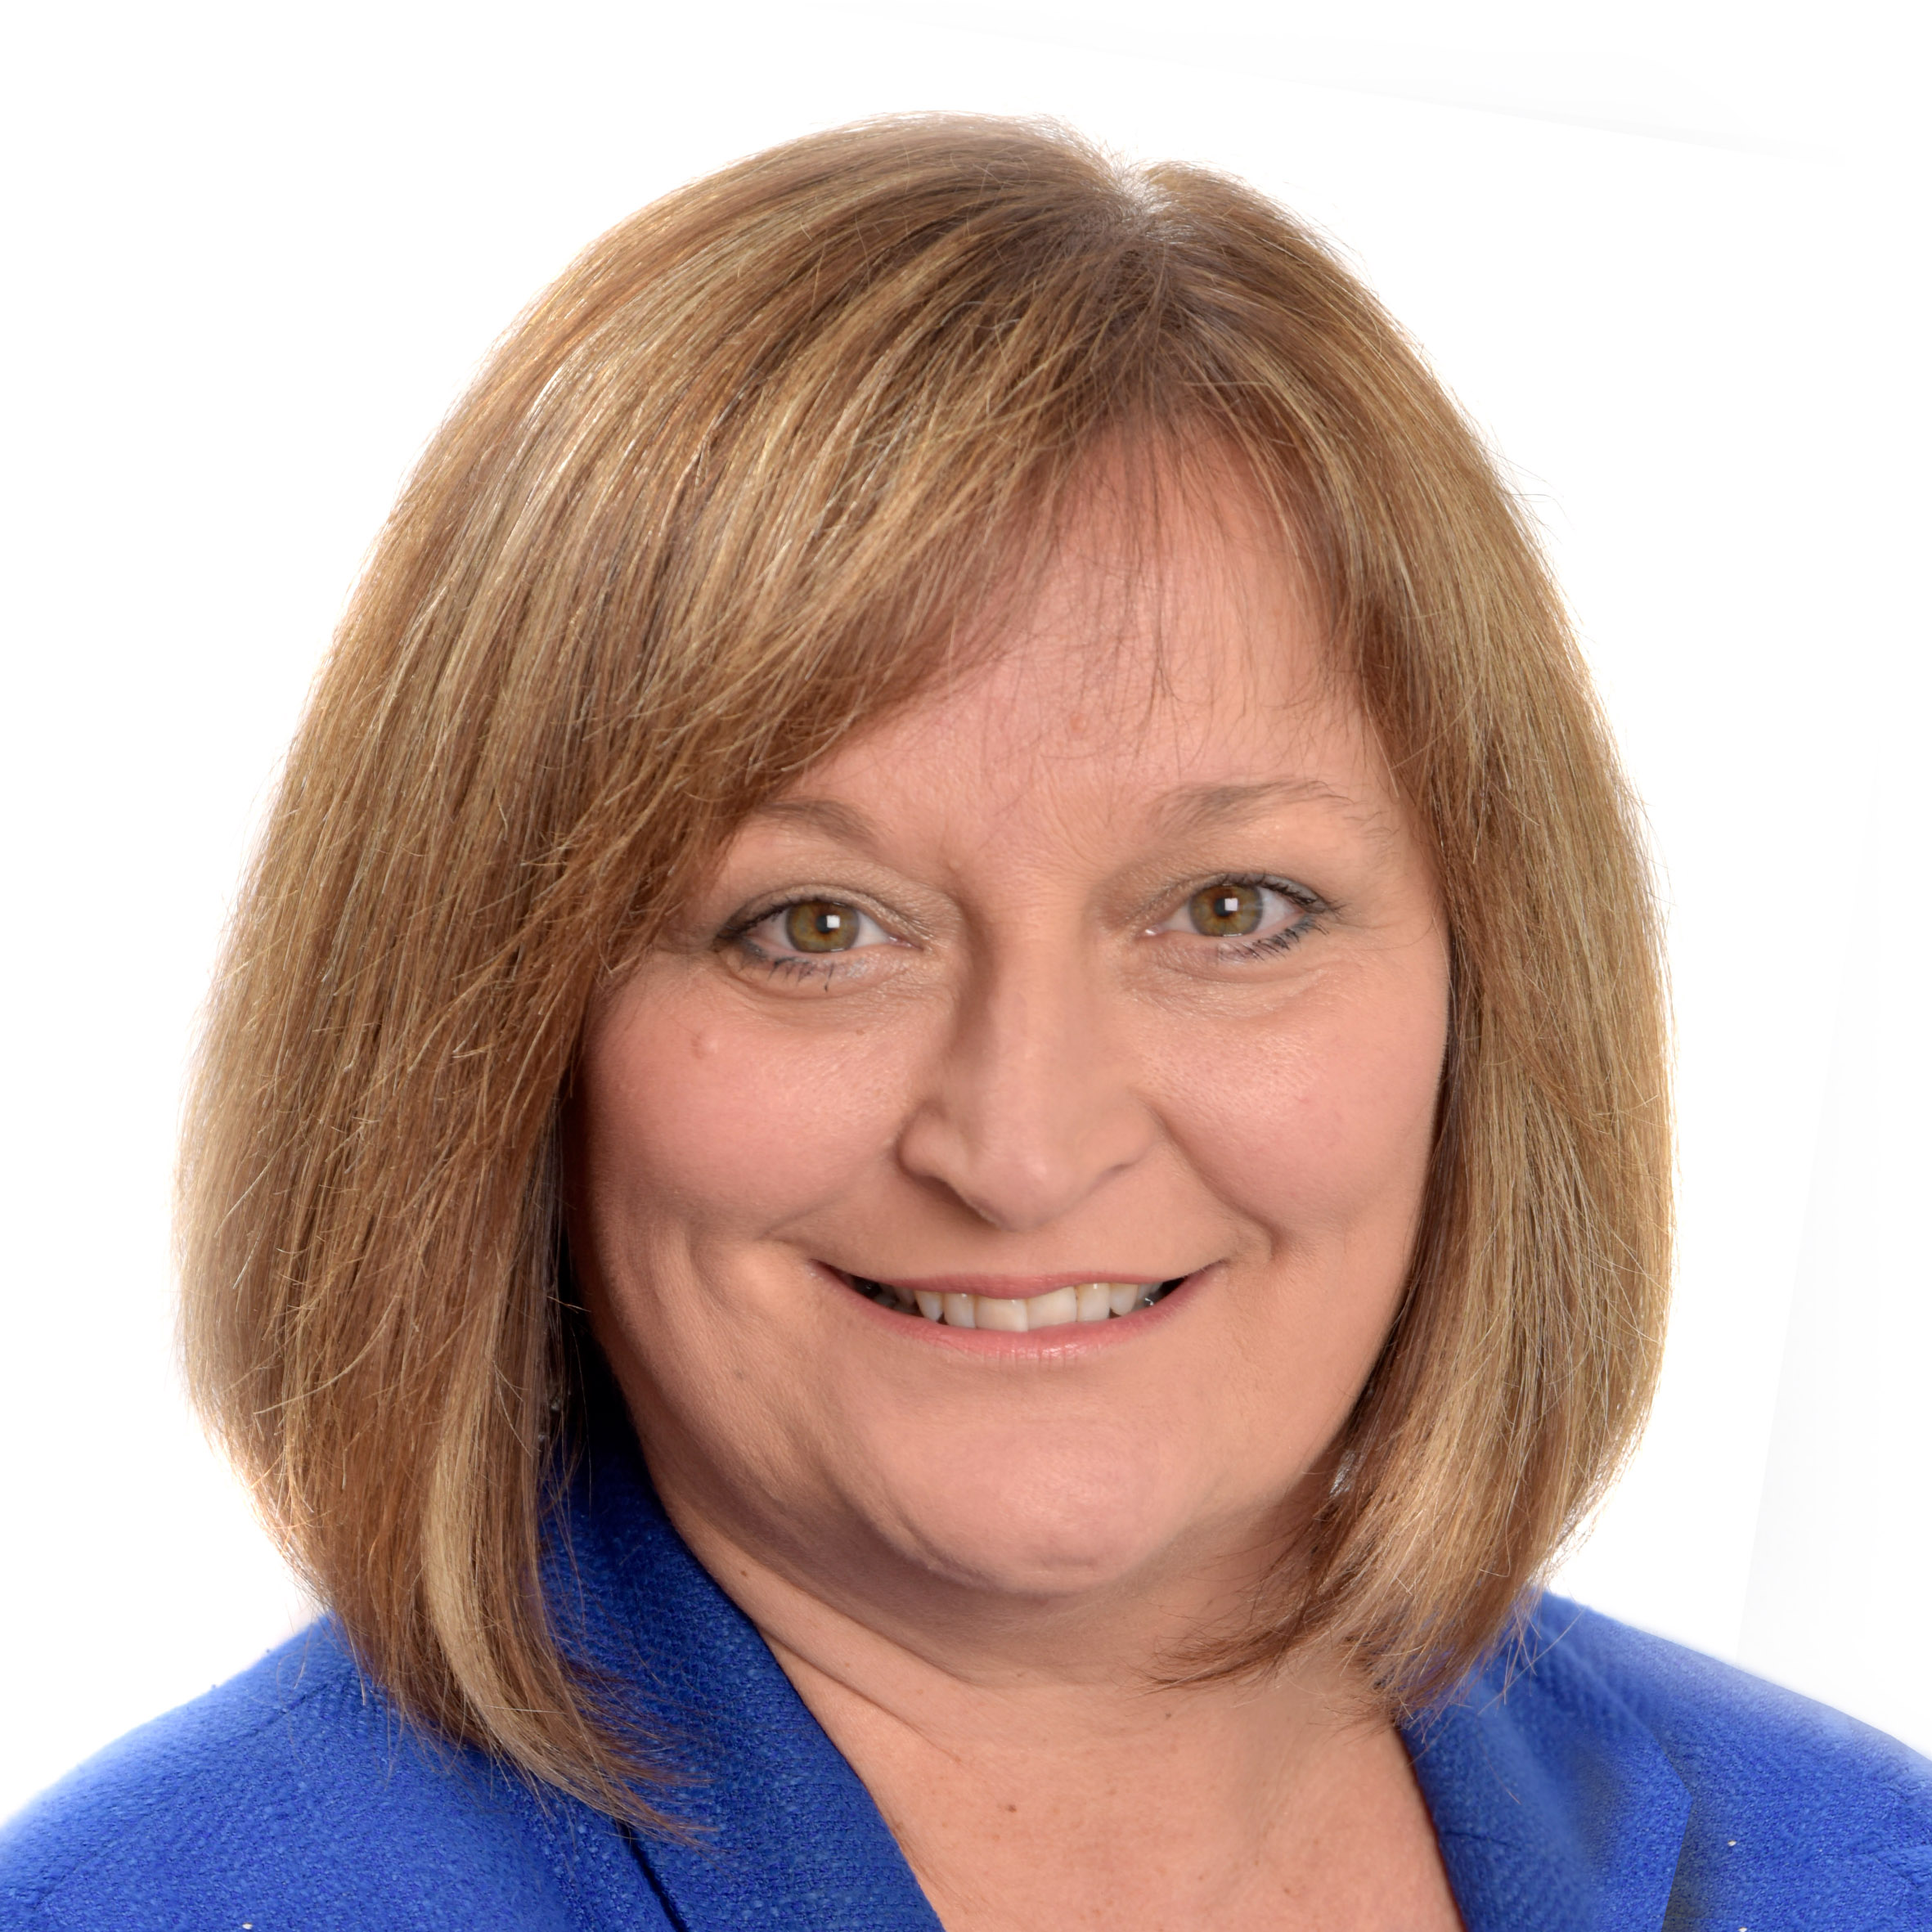 Karen Mitchell - Principal and Chief Executive